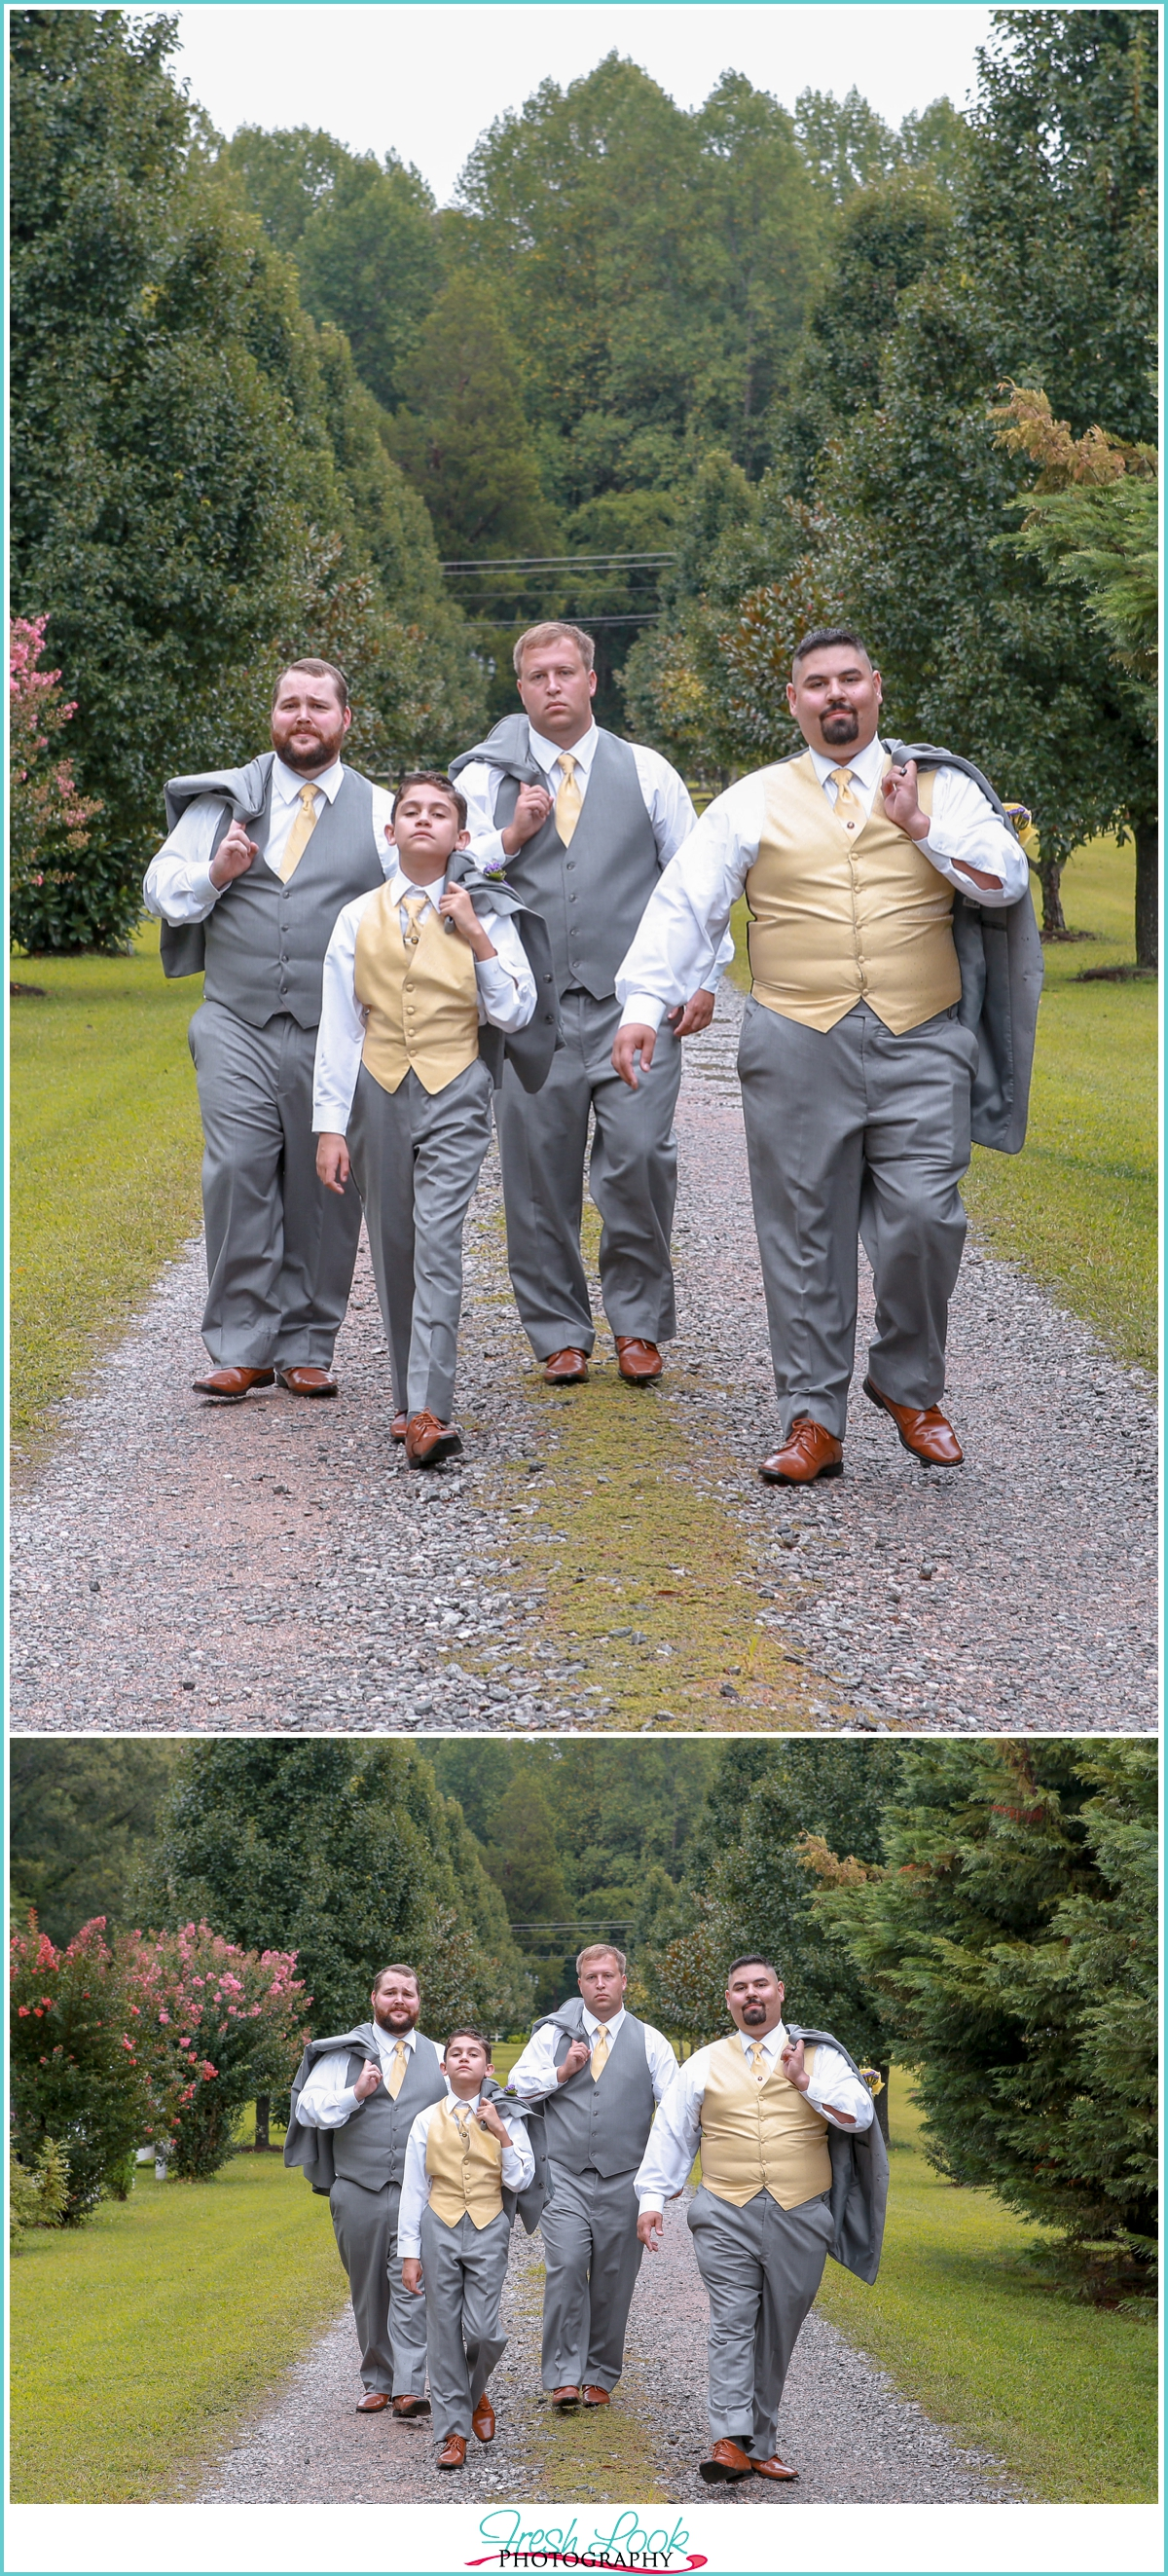 groomsmen walking and looking cool